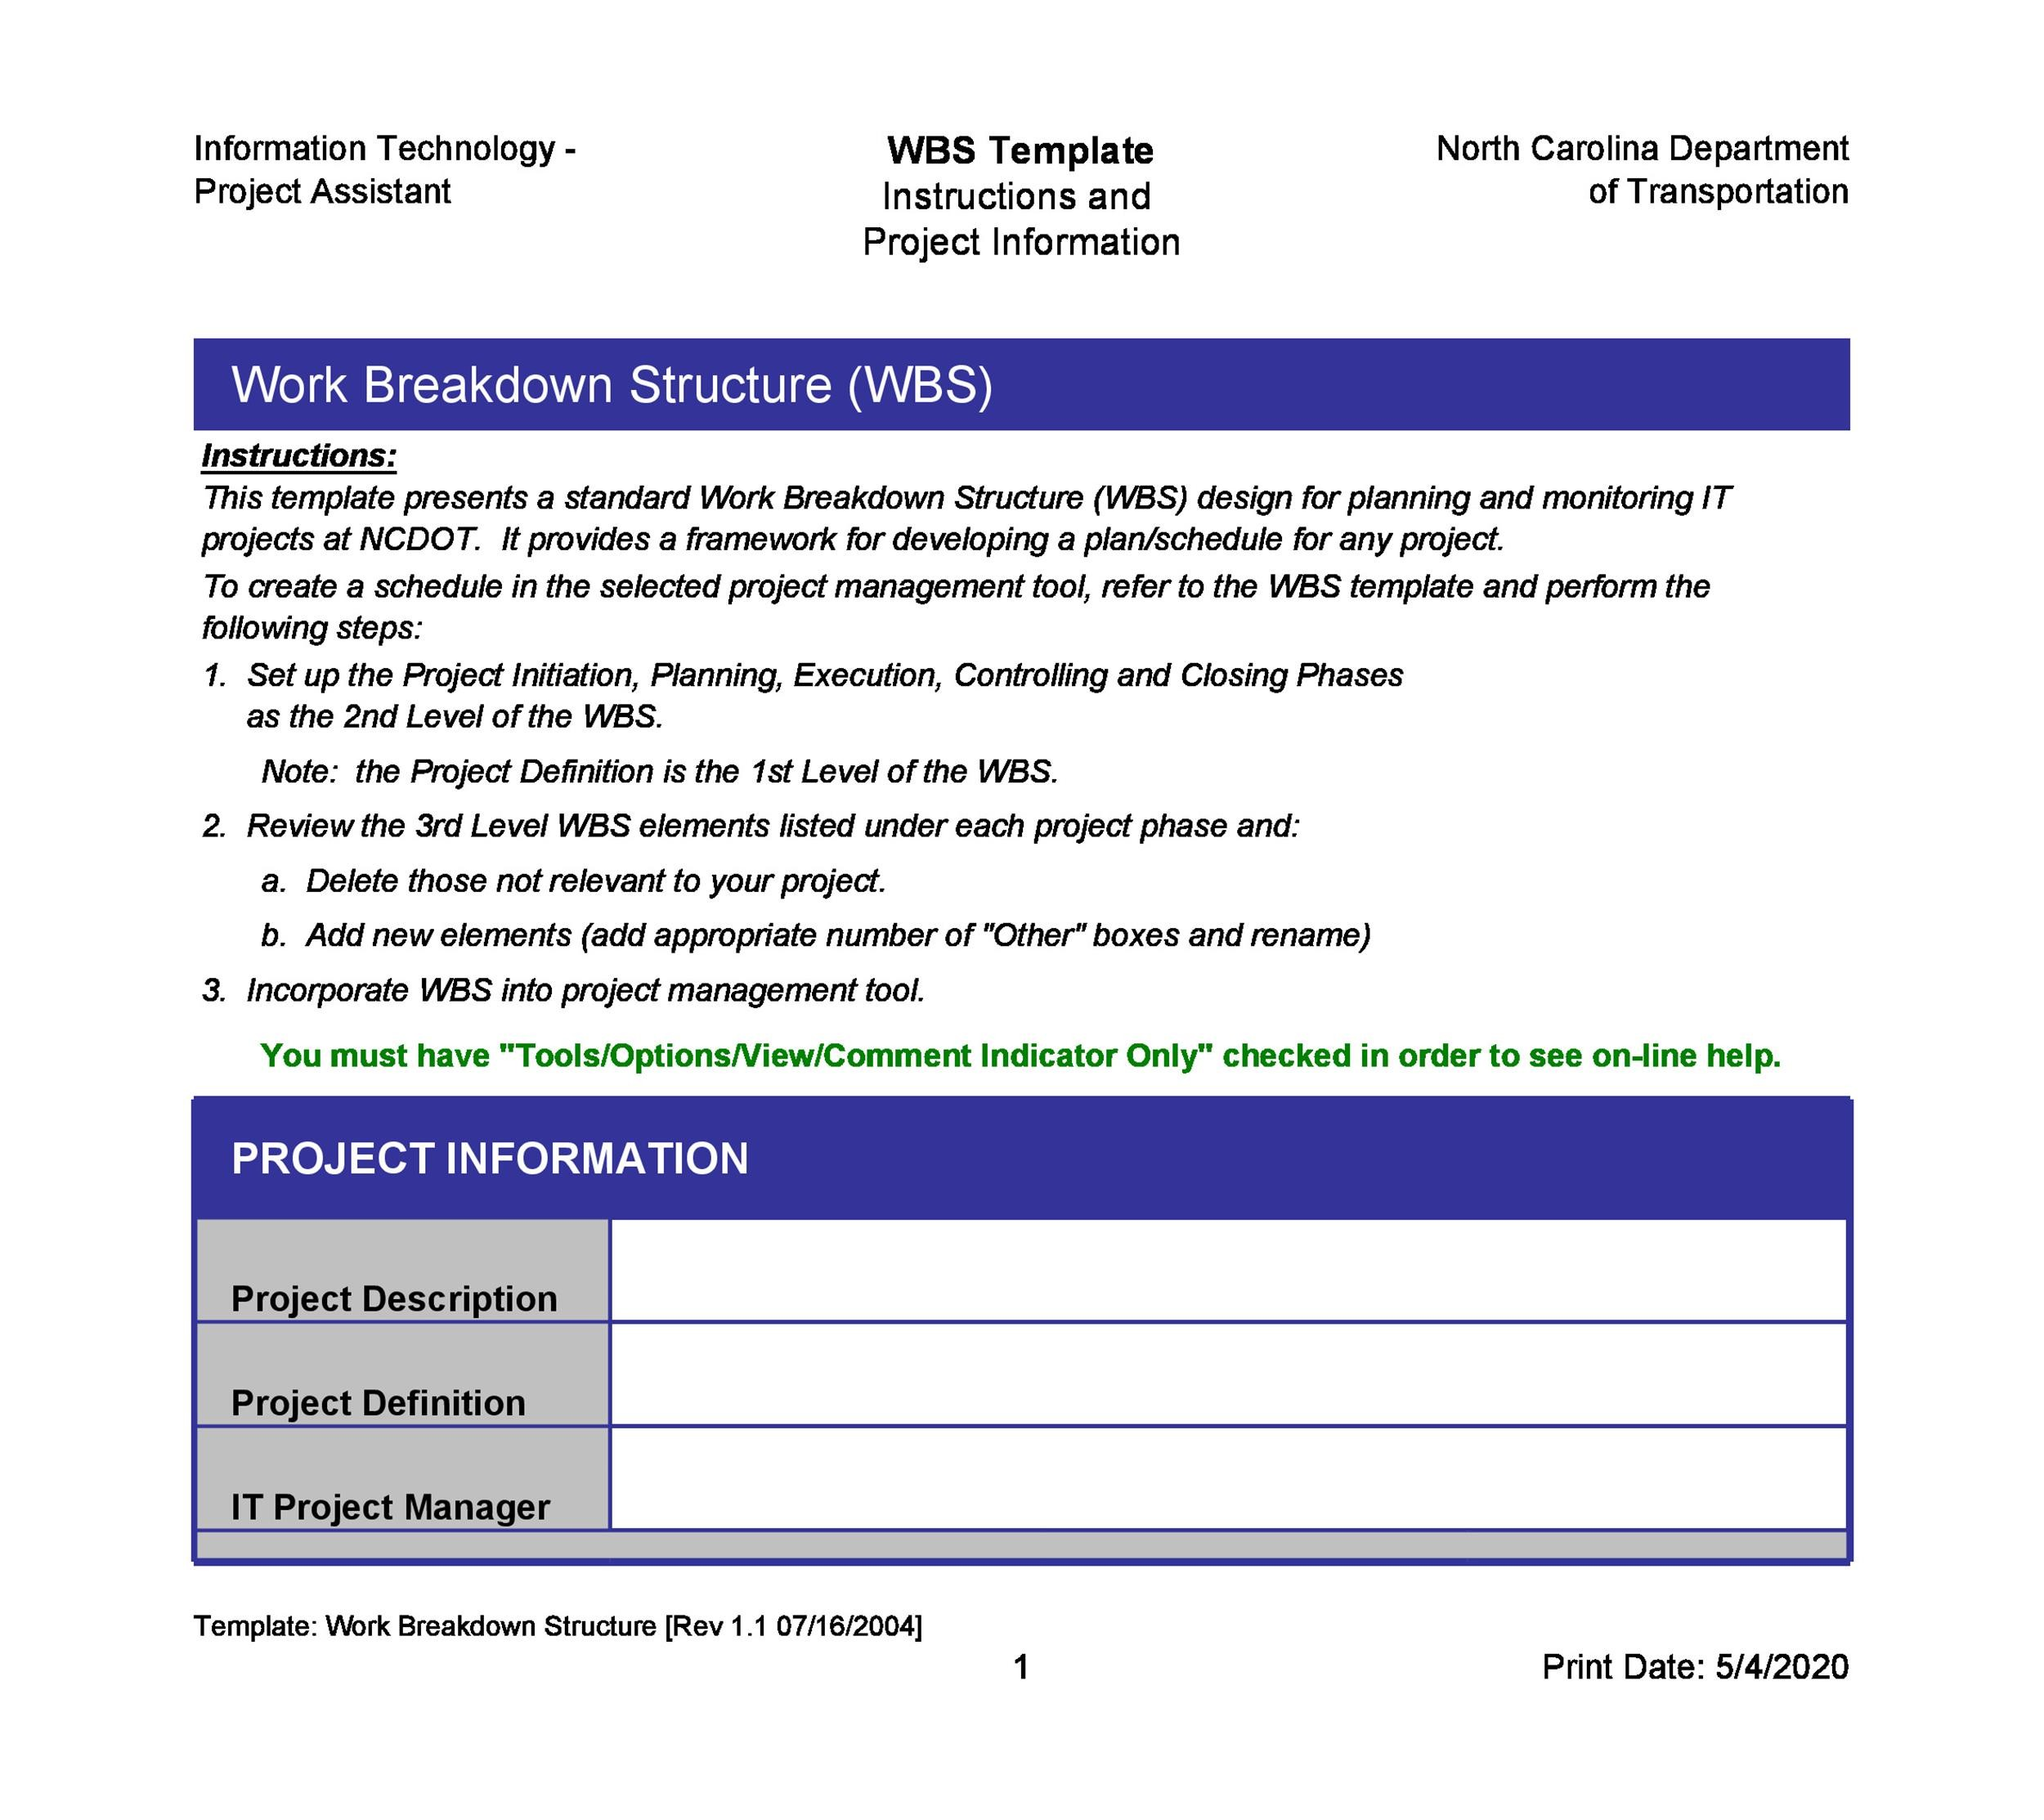 30+ Work Breakdown Structure Templates Free - Template Lab - work breakdown structure template